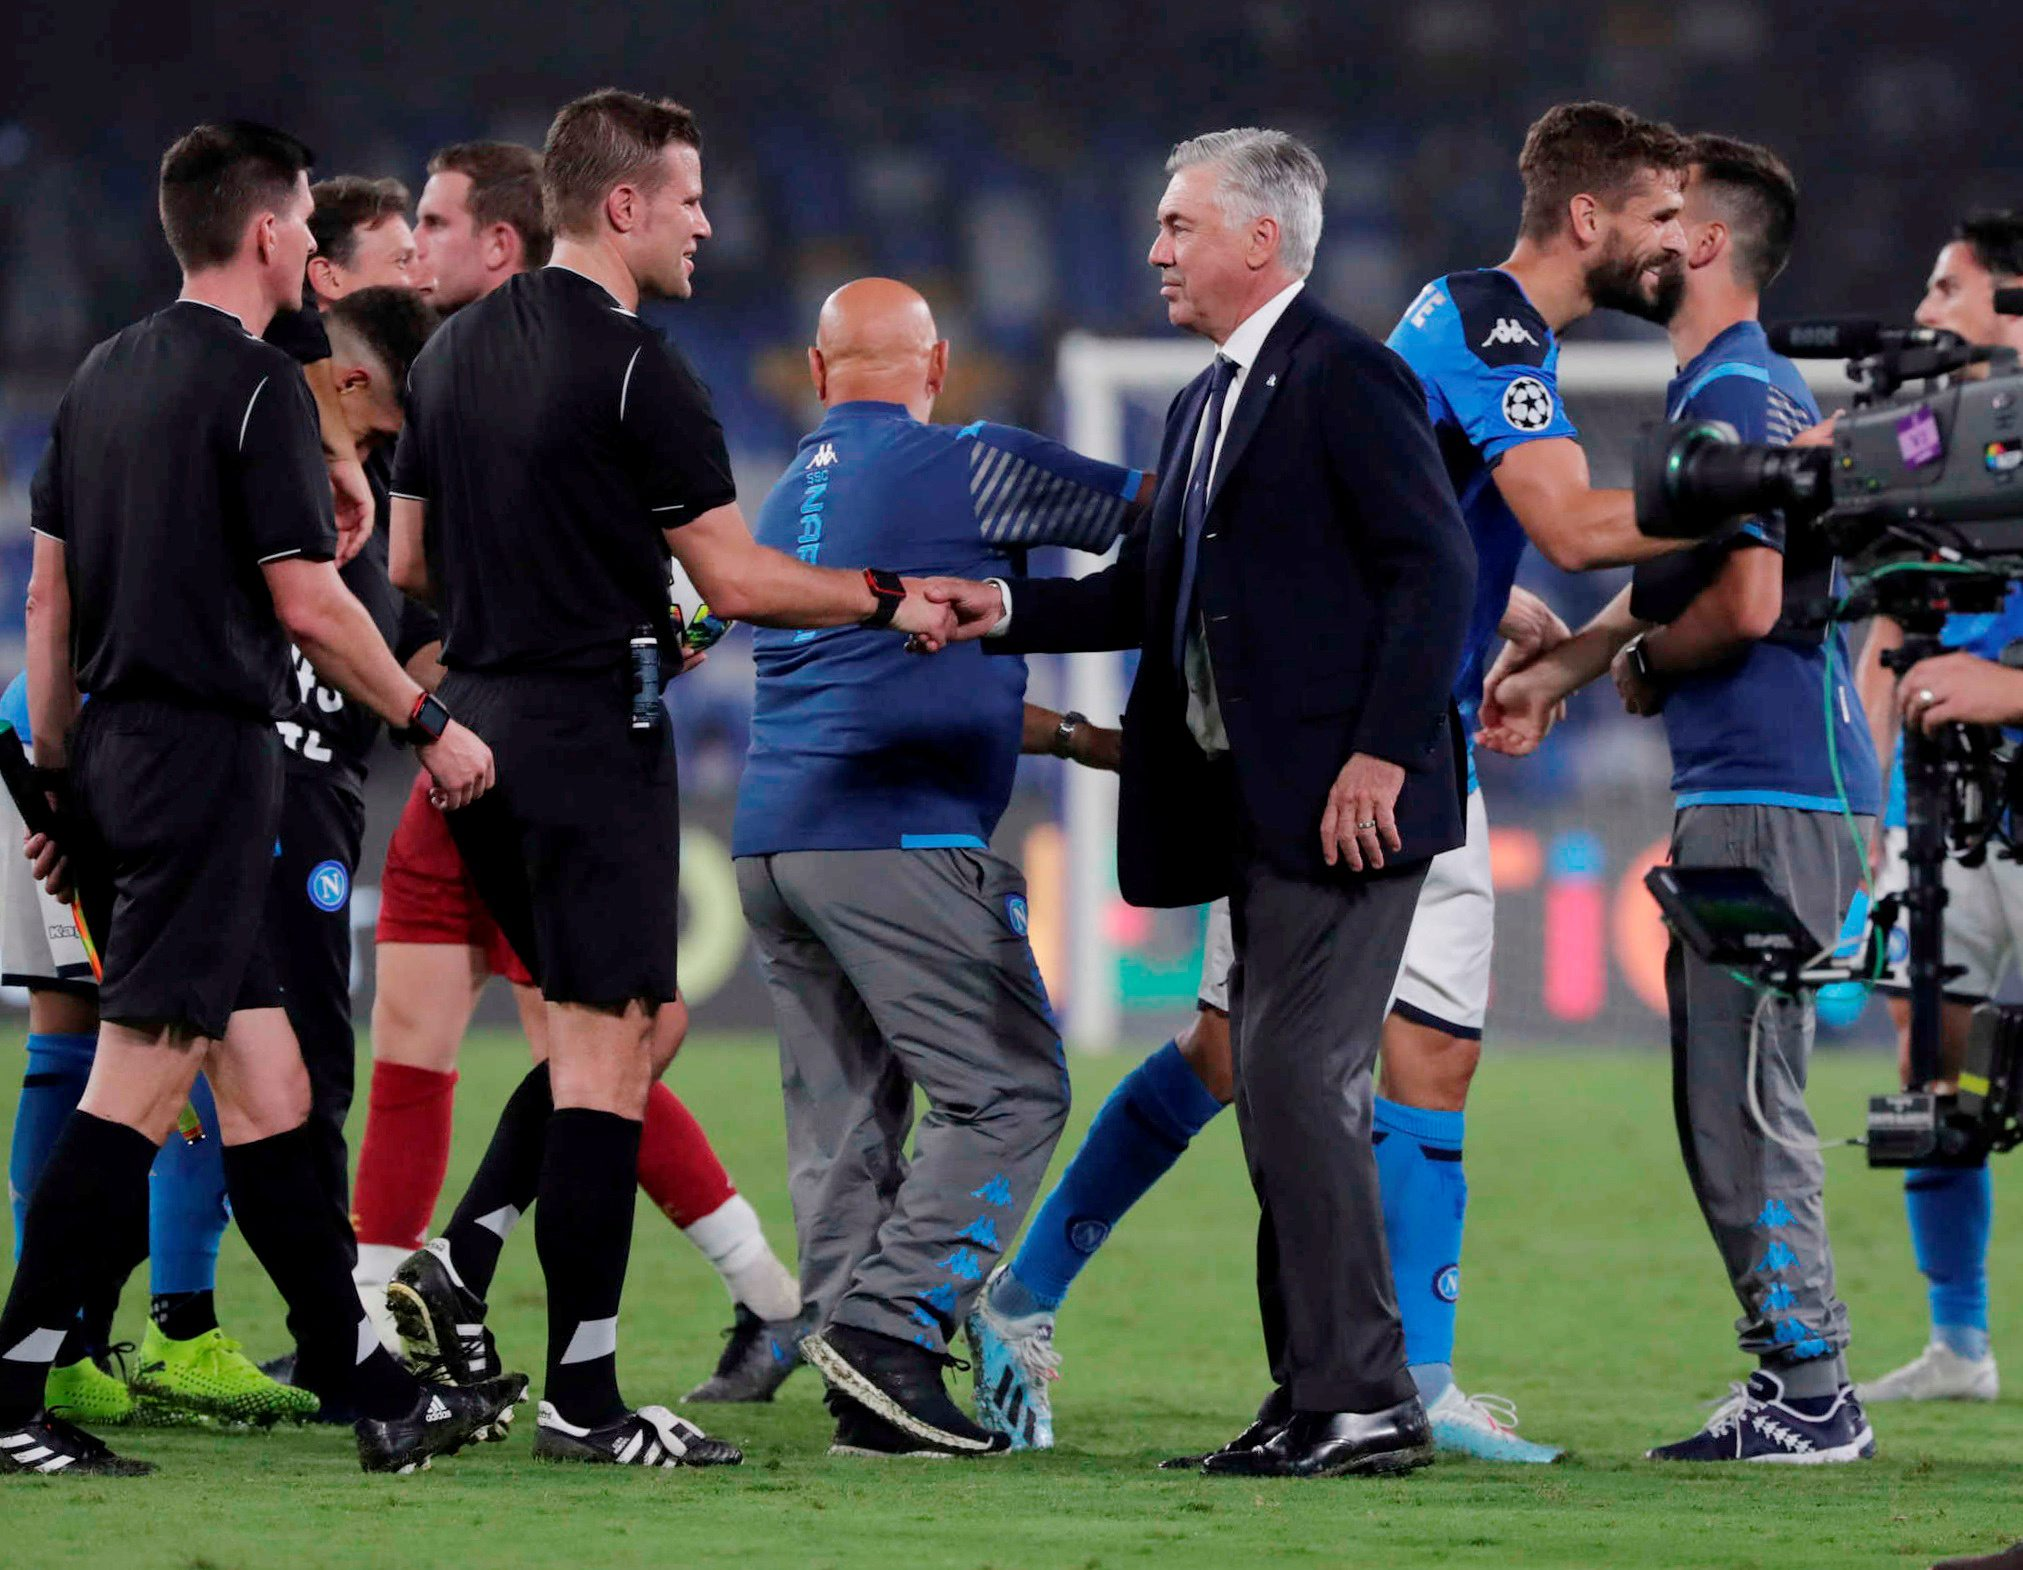 Soccer Football - Champions League - Group E - Napoli v Liverpool - Stadio San Paolo, Naples, Italy - September 17, 2019  Napoli coach Carlo Ancelotti shakes hands with referee Felix Brych after the match  REUTERS/Ciro De Luca